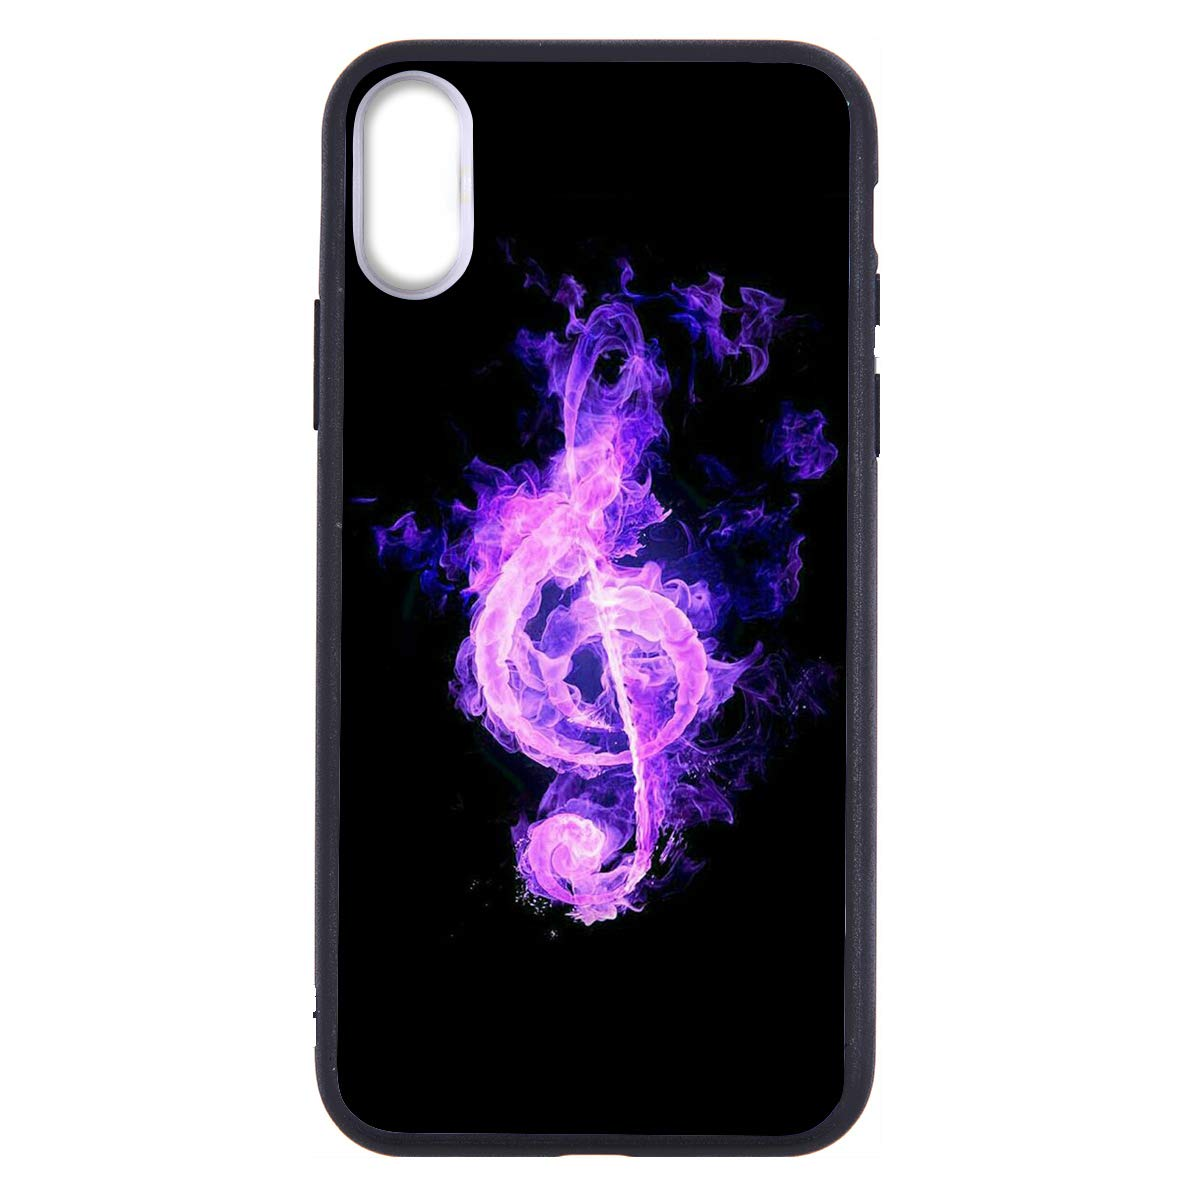 LuGeKe Burning Music Phone Case for iPhone6 Plus/iPhone6s Plus,Music Patterned Cool Design Case Cover,HardPCBackwithTPUBumper Anti-Stratch Bumper Protective Cool Boys Phonecase(Fire Music)